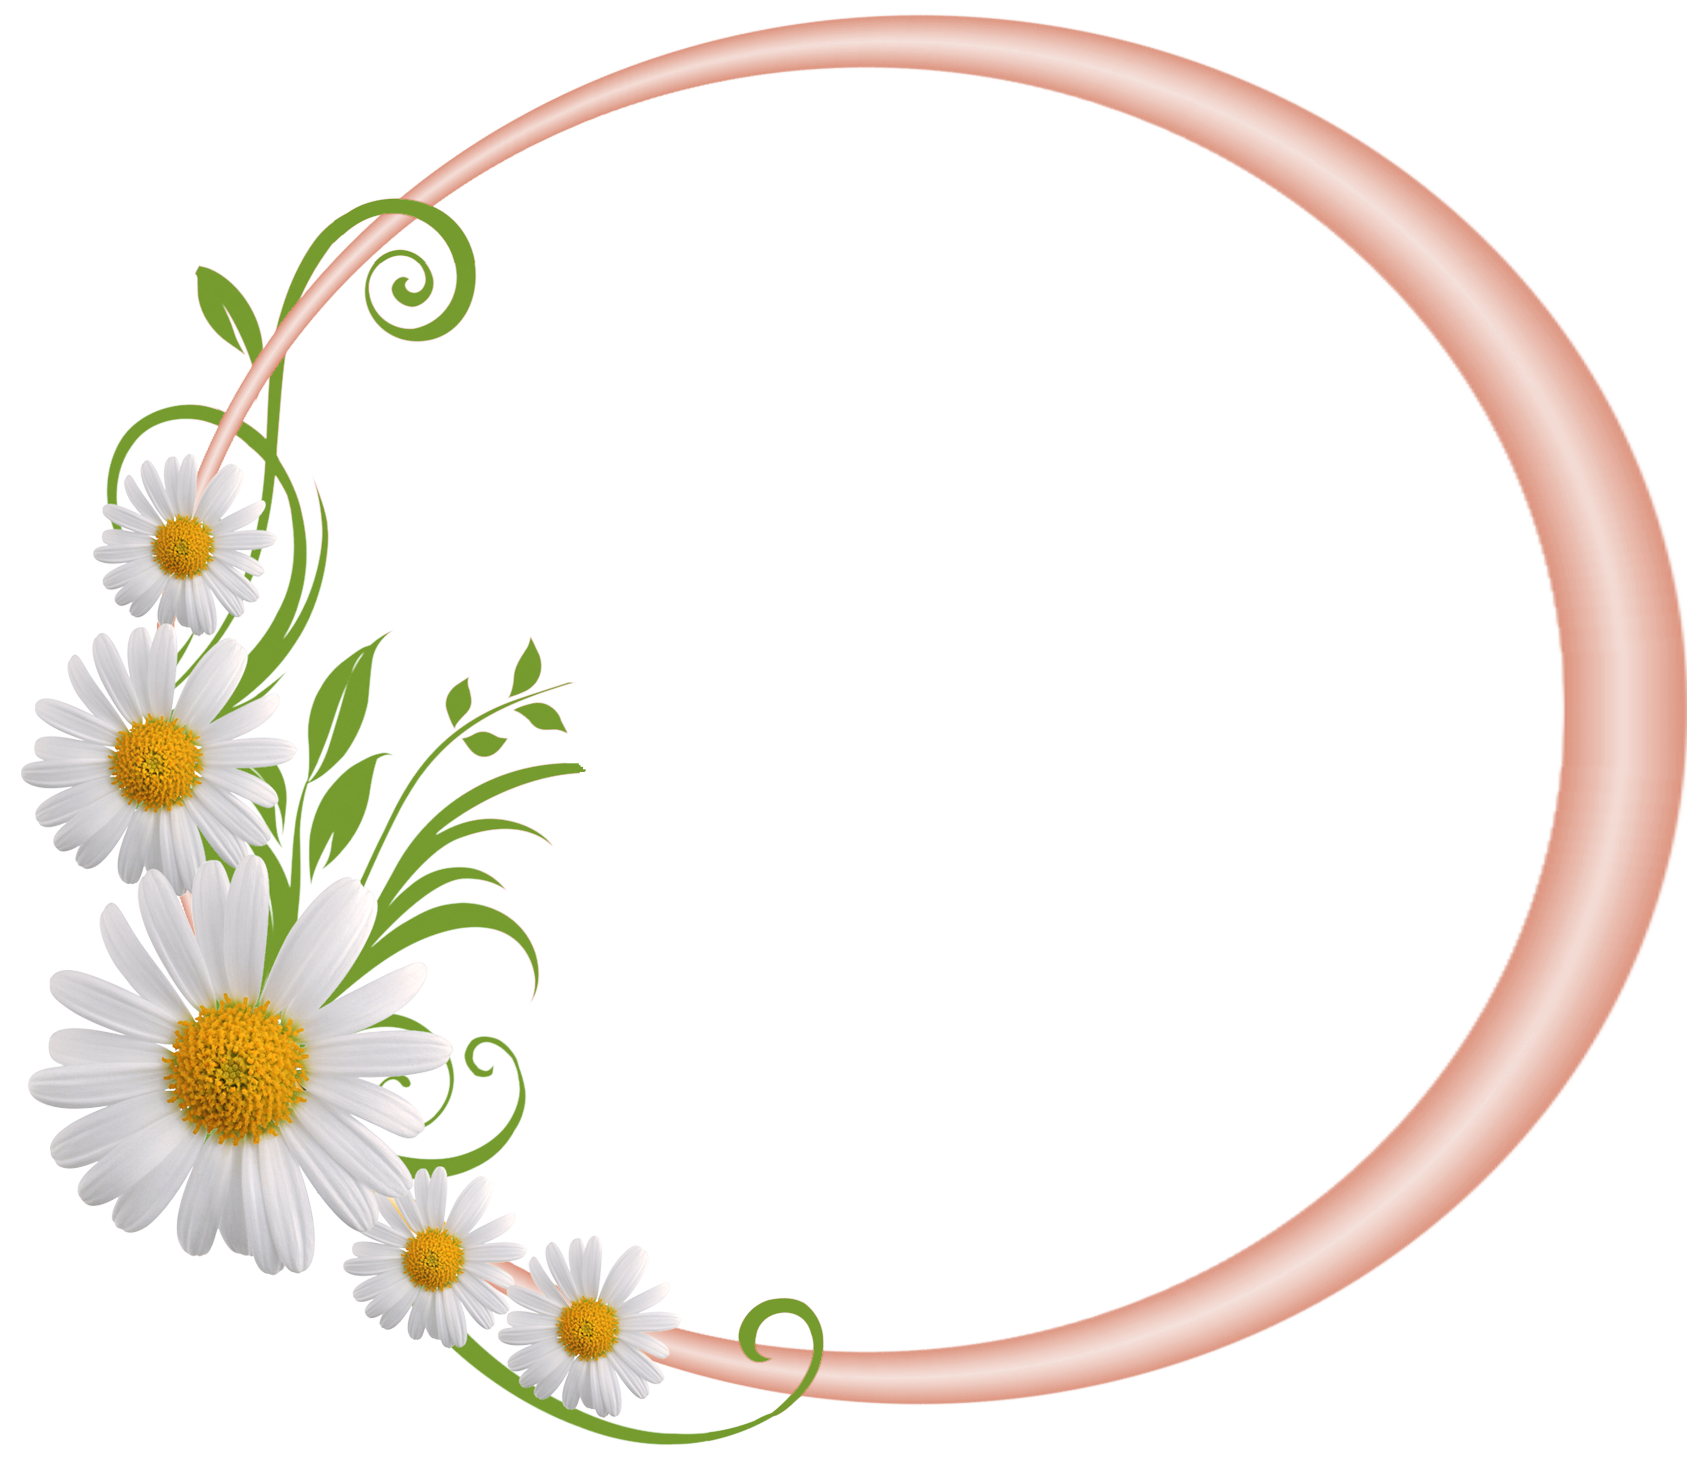 Daisies clipart smiley. Cream round frame with